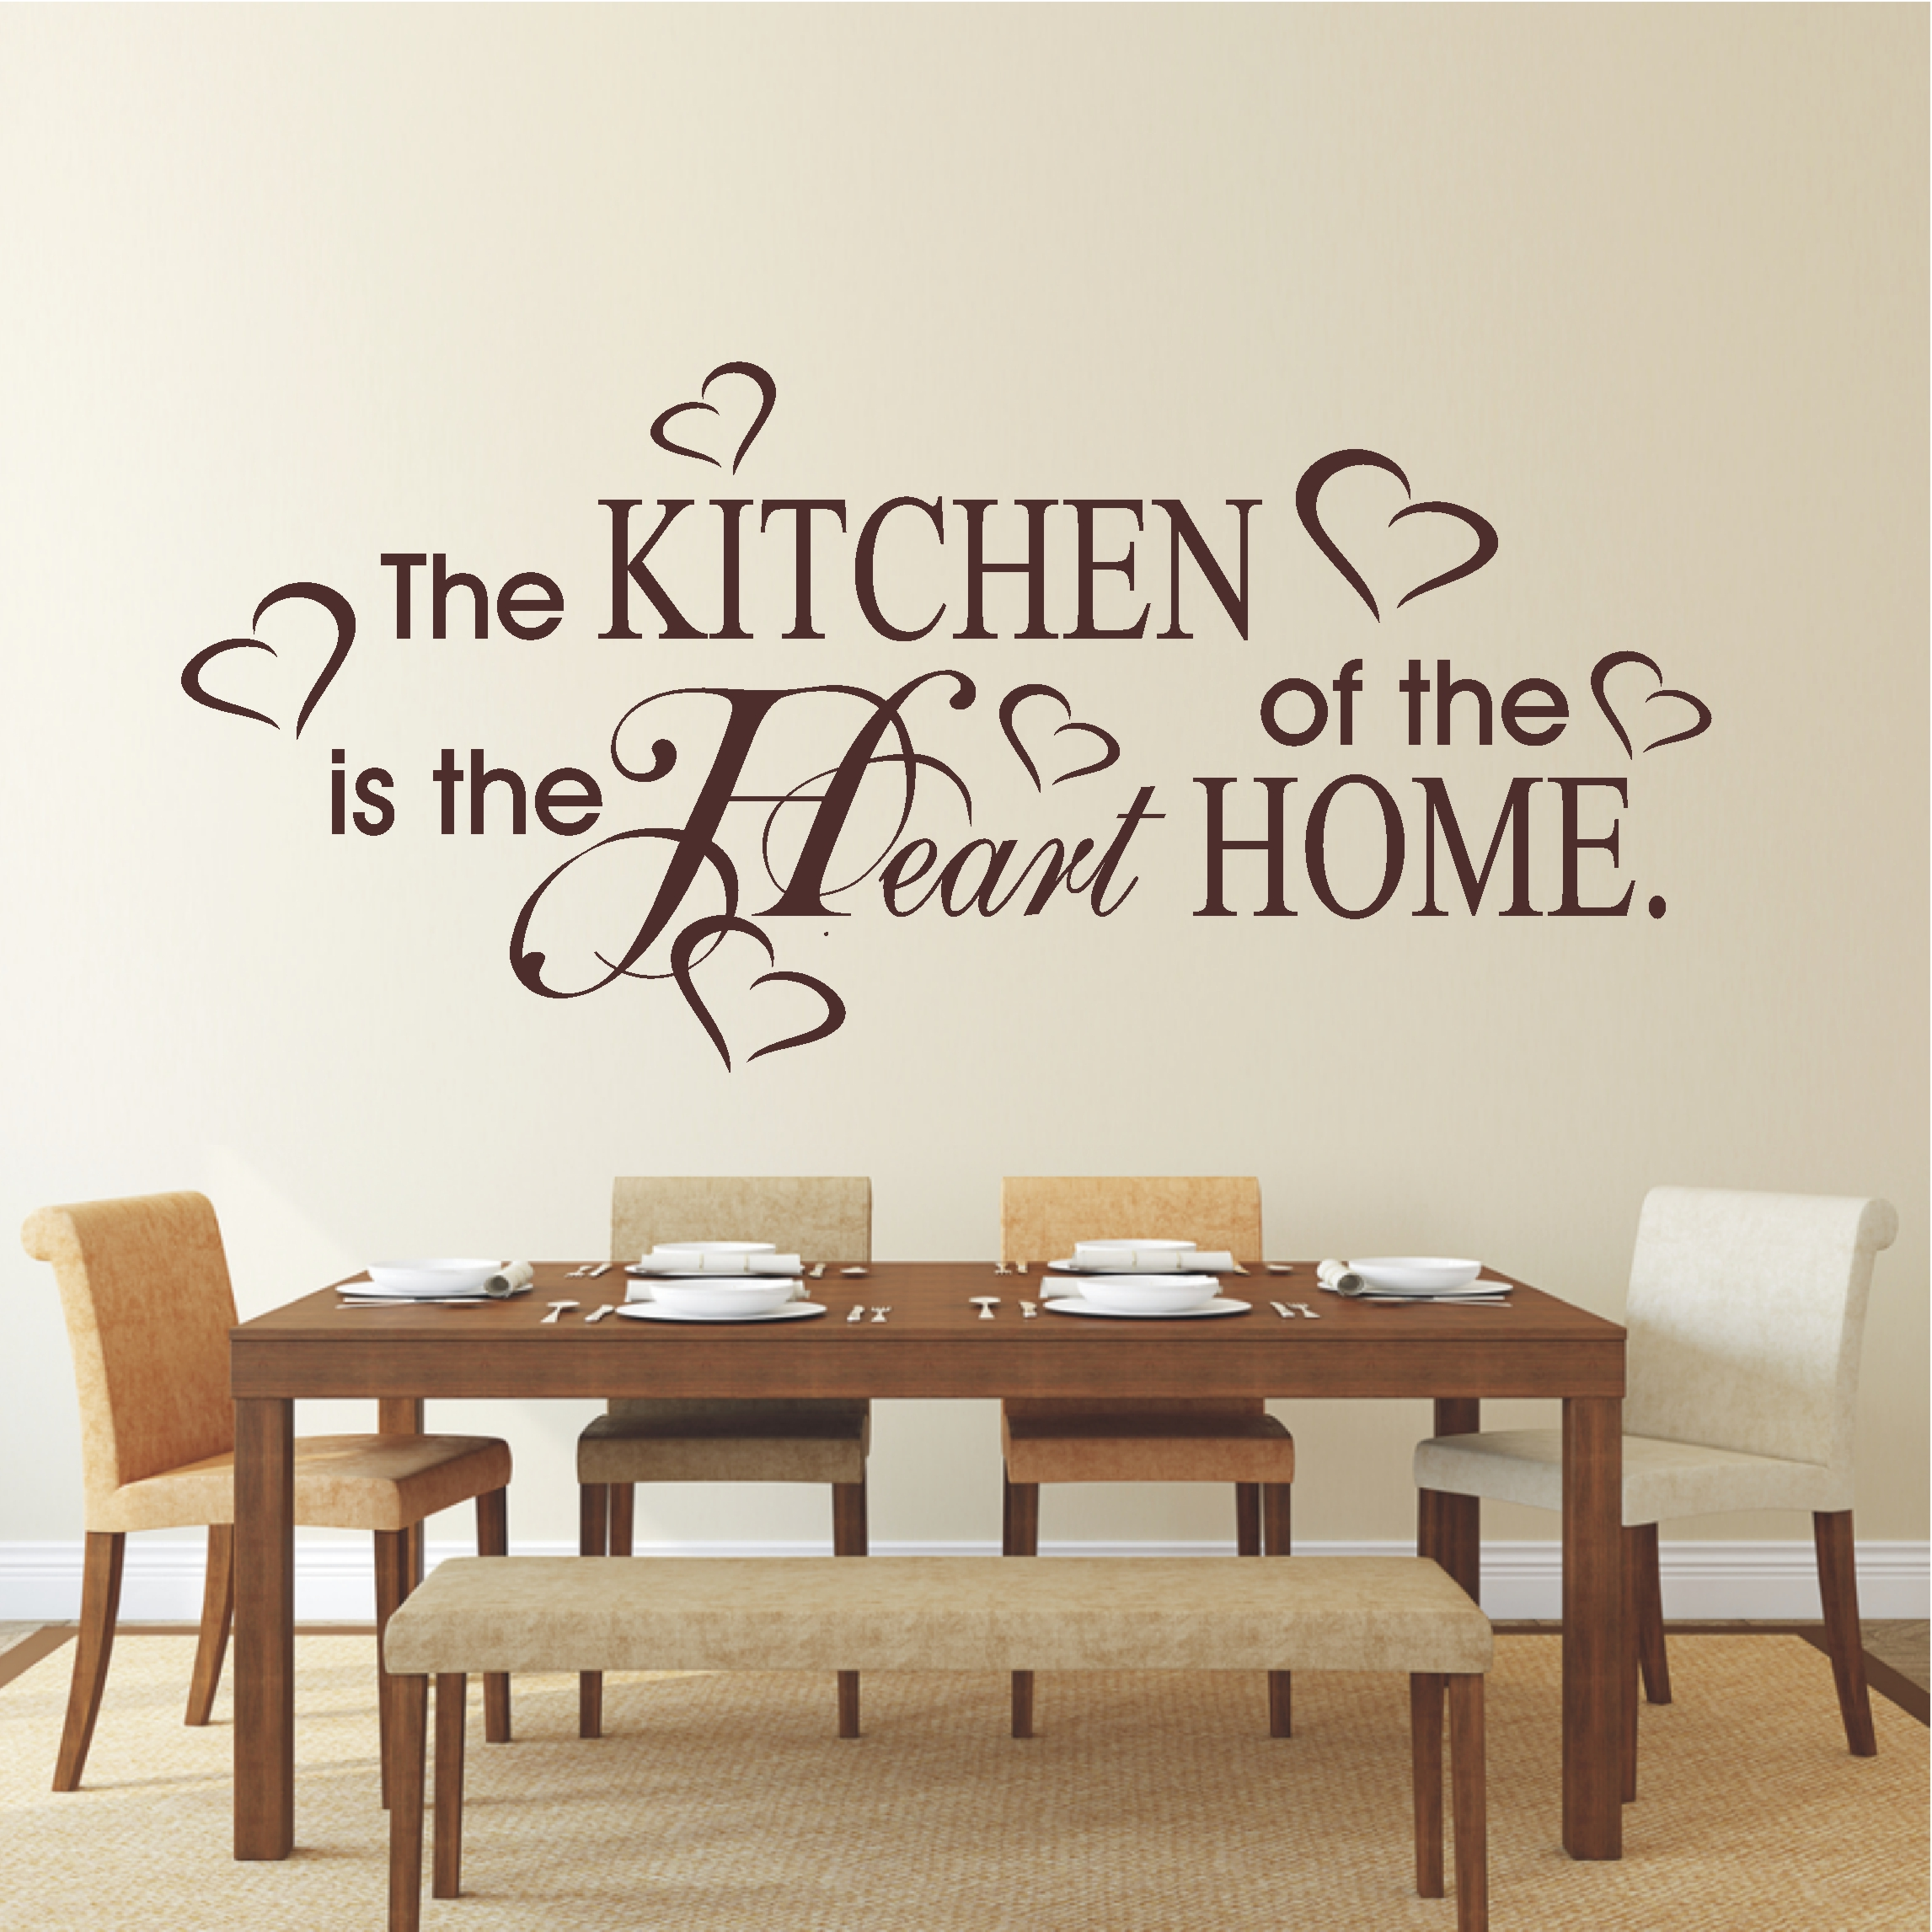 Deko shop wandtattoo kitchen heart home deko shop for Home deko shop